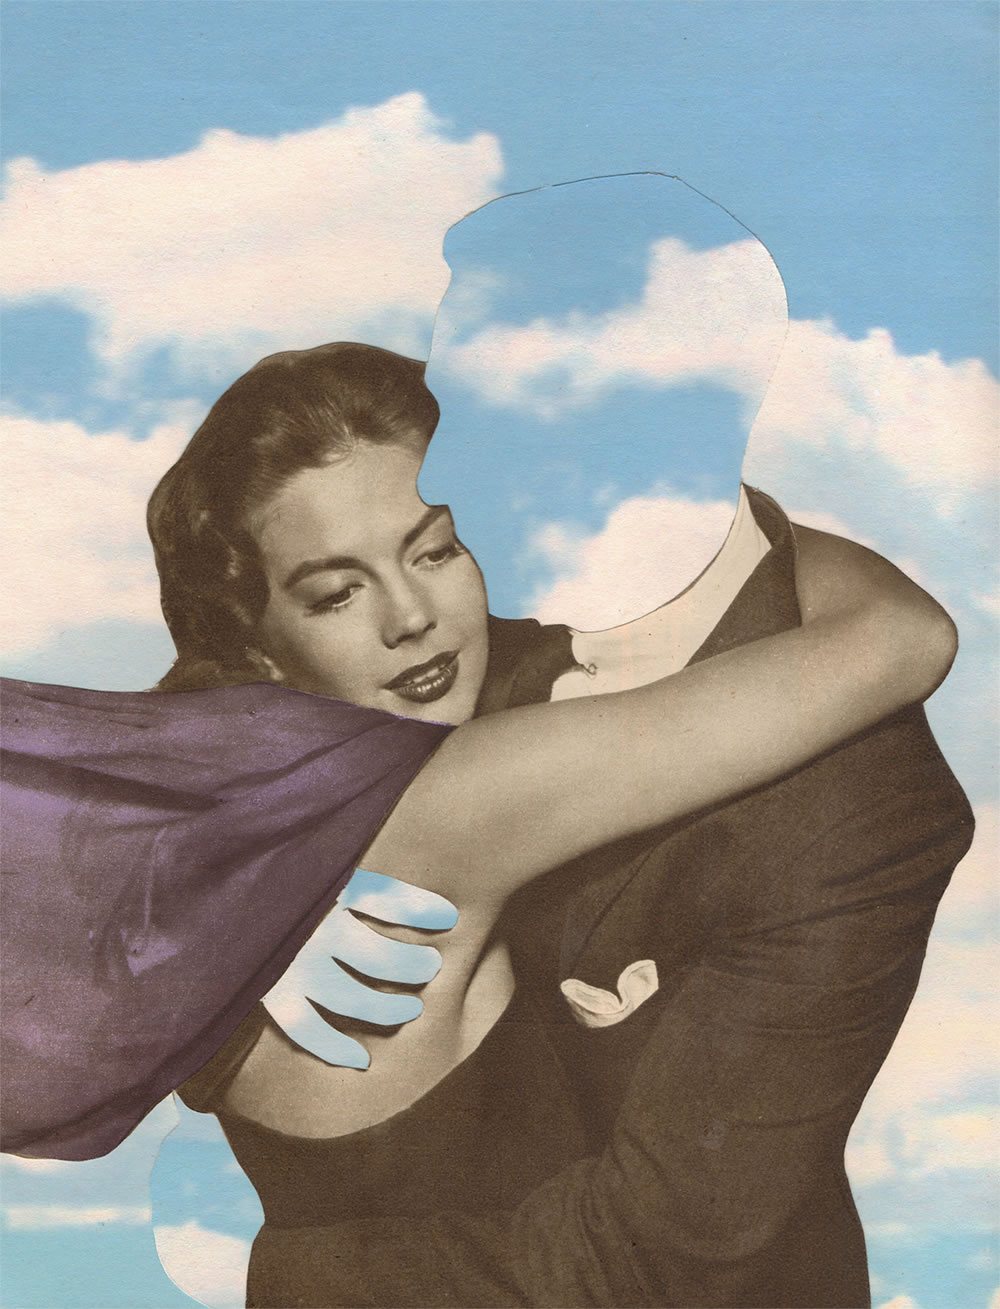 invisible cloud man with woman by joe webb, collage